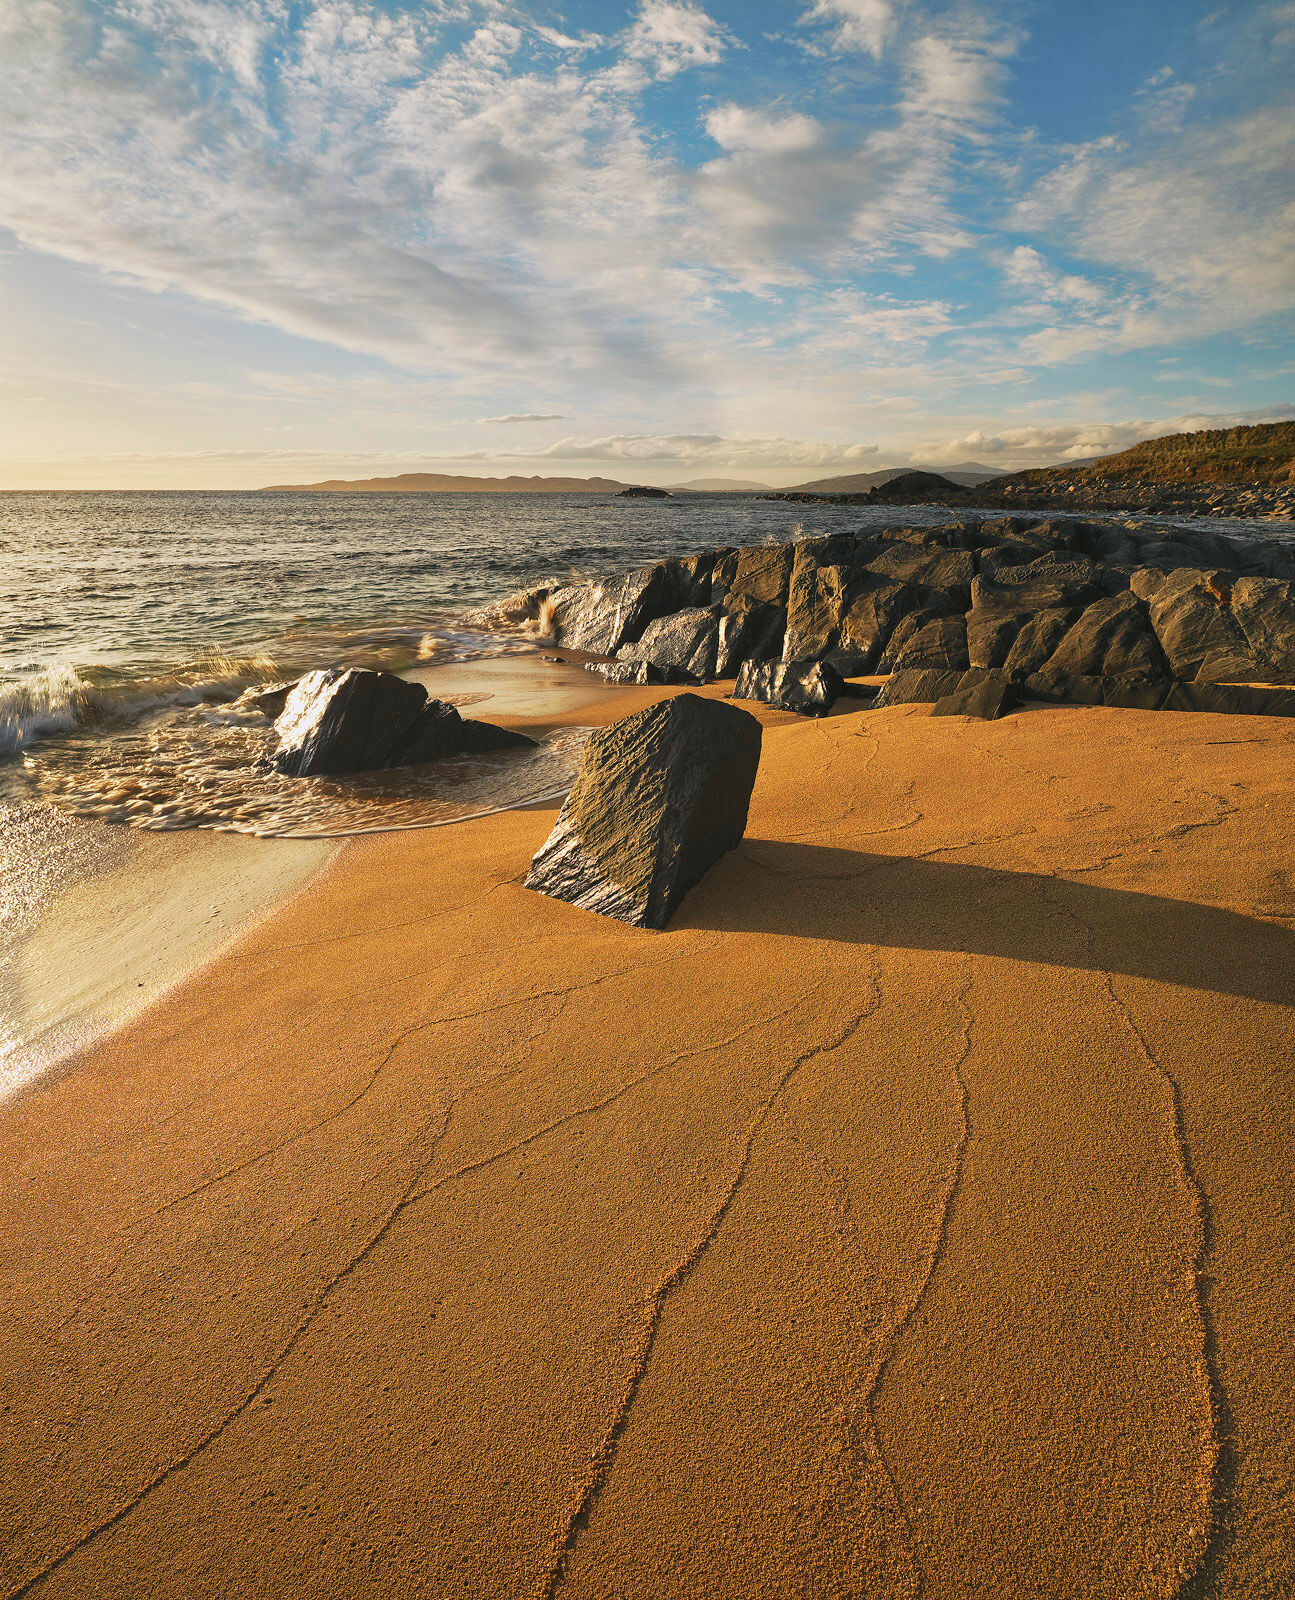 A spiders web of wave contours forms on Traigh Mhor's orange sand beach at sunset on the Isle of Harris.